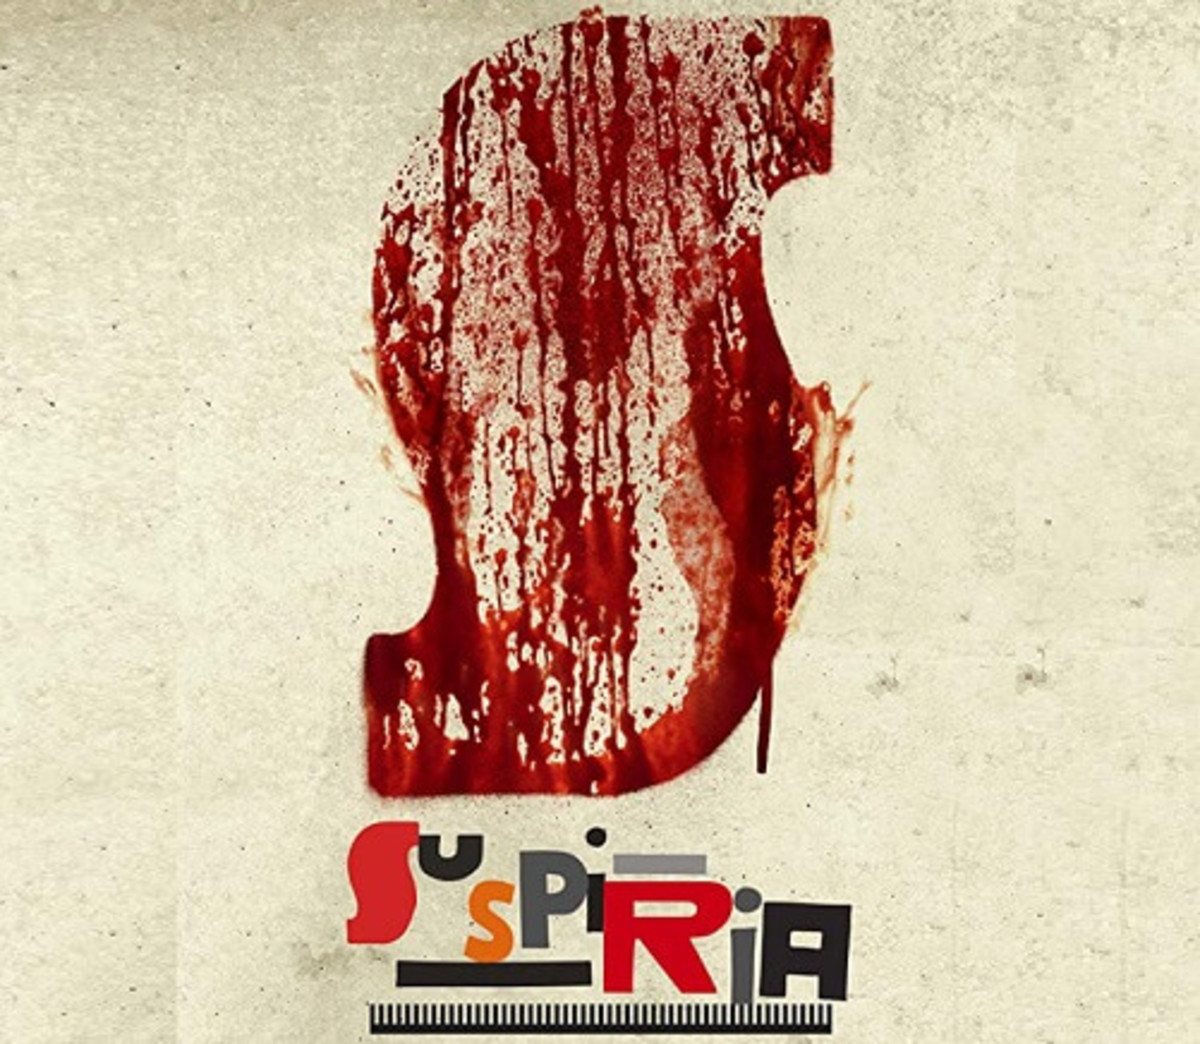 New Review: Suspiria (2018)